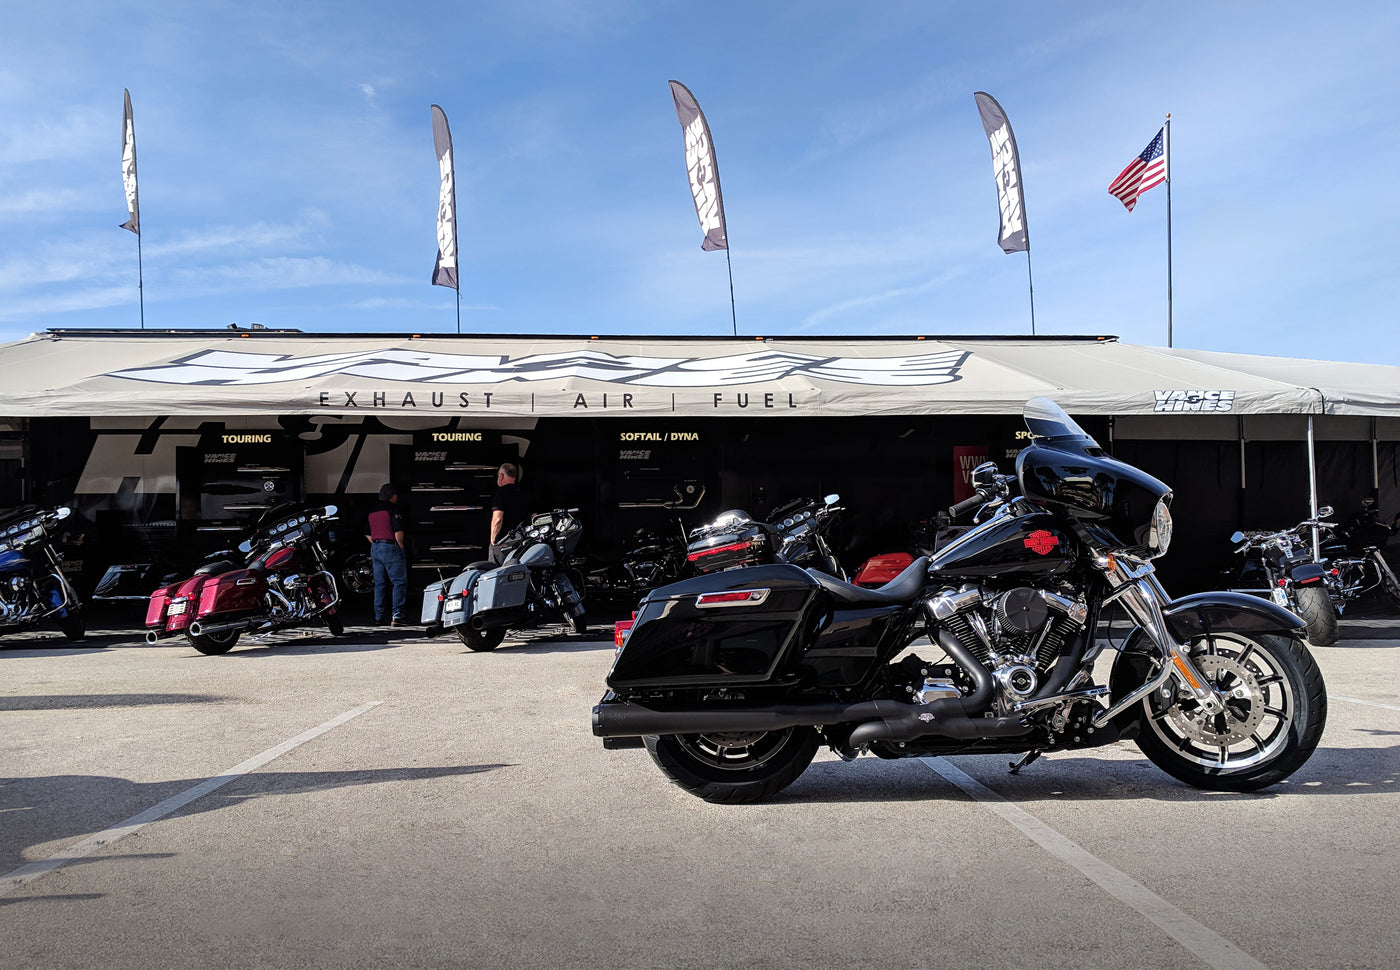 Personalized Experiences Drive Vance & Hines Road Show in 2020